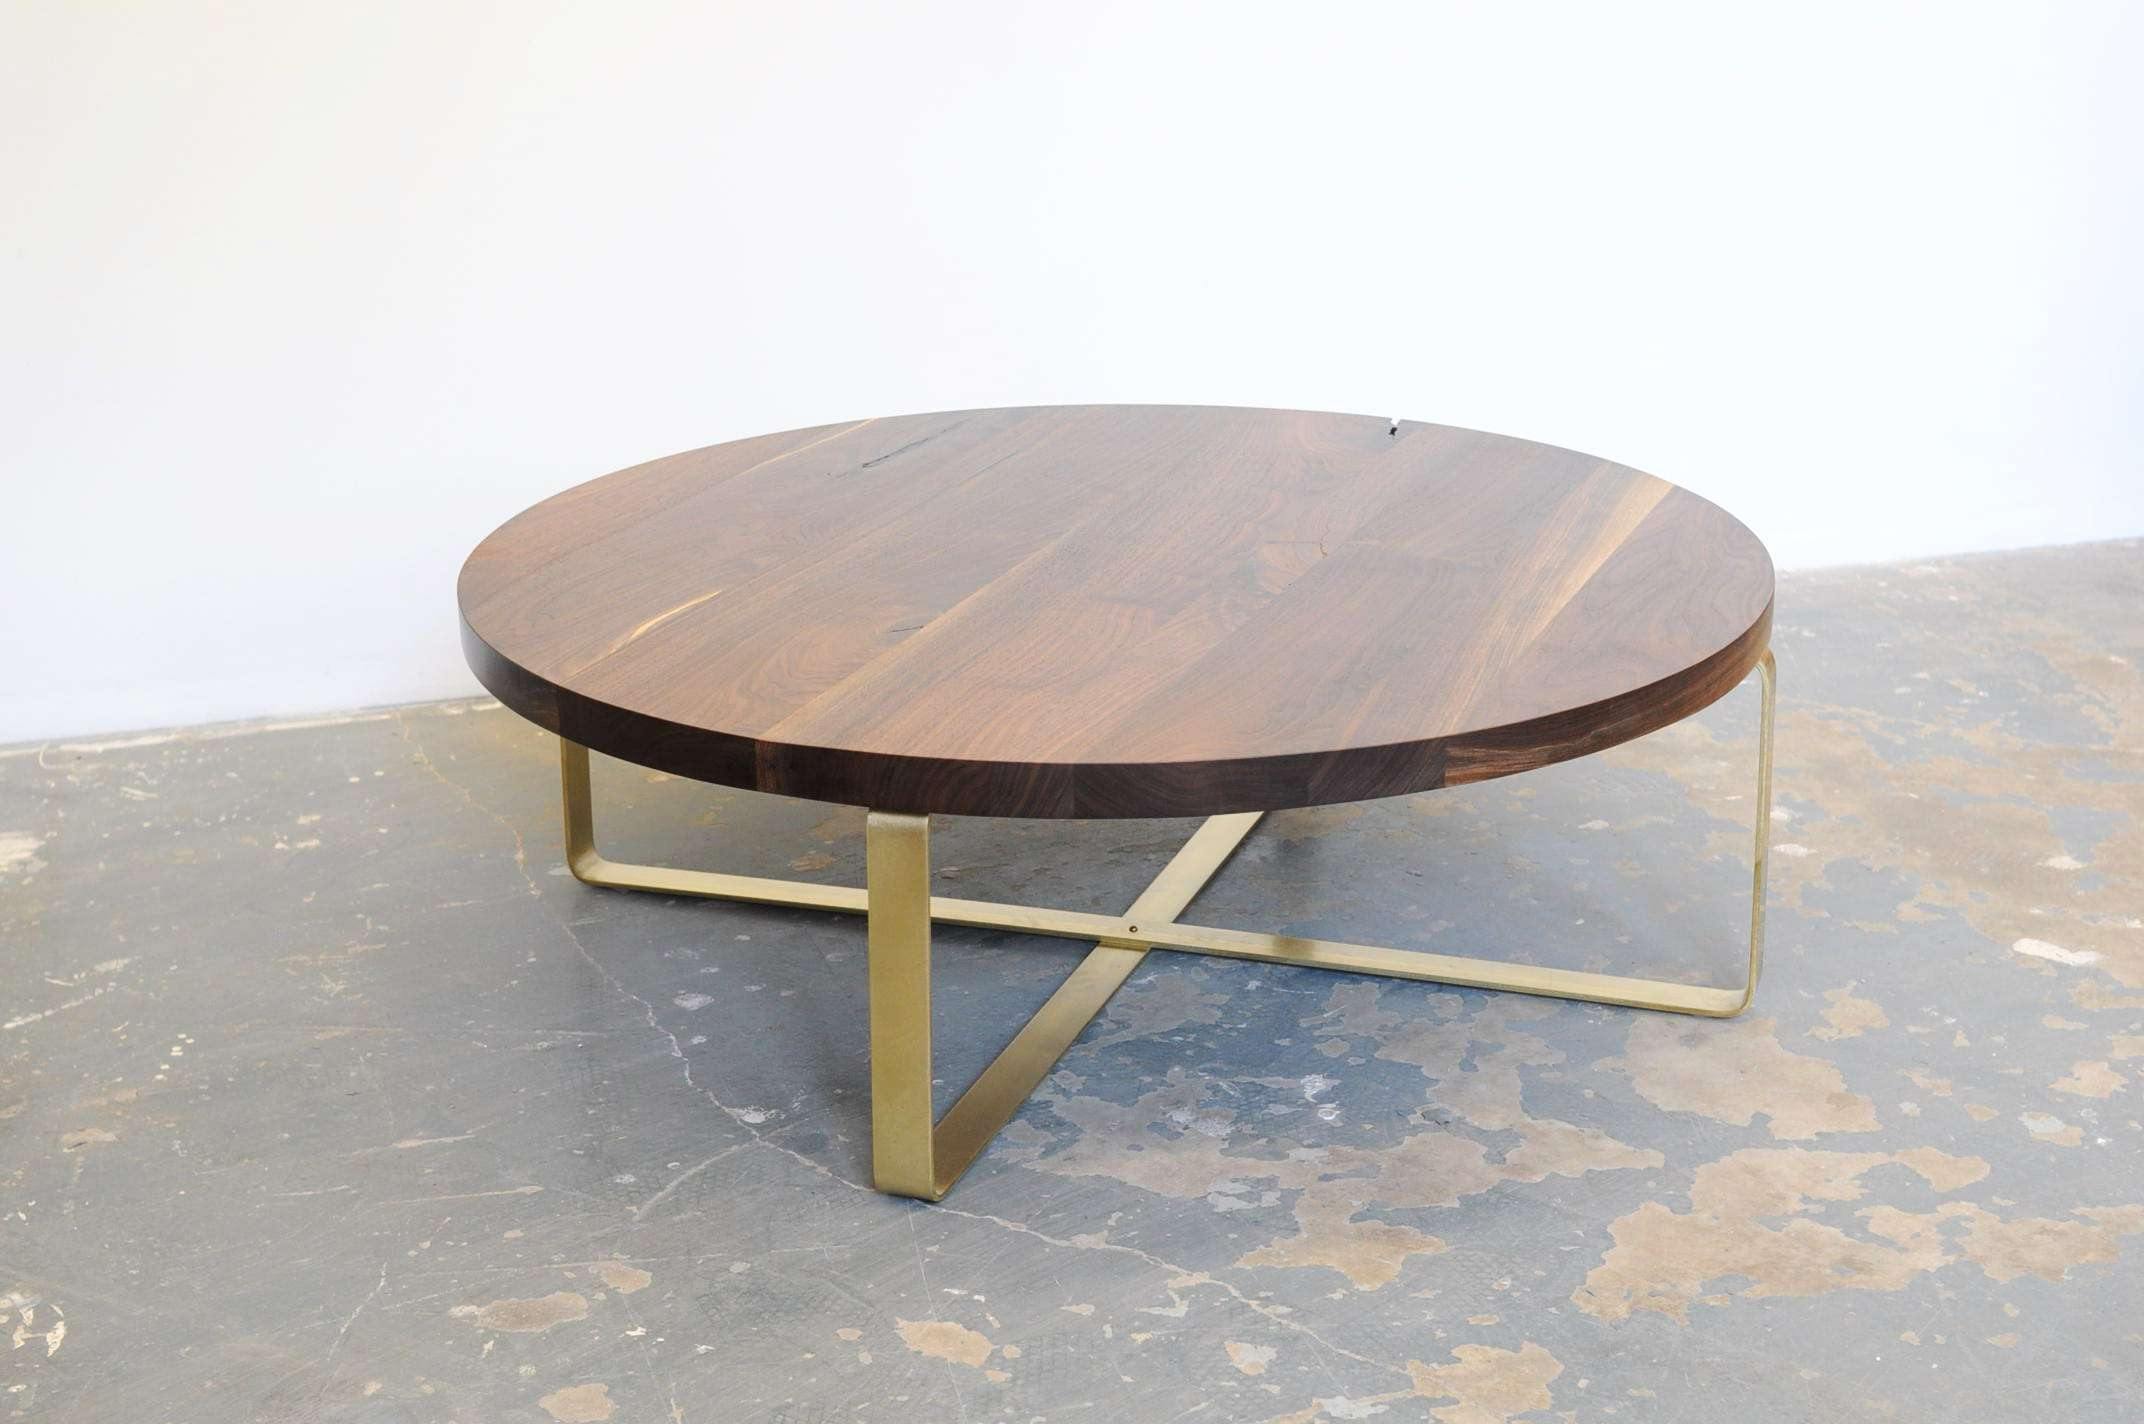 Coffee Table : Marvelous Metal Coffee Table Base Oversized Coffee With Regard To Popular Oversized Round Coffee Tables (View 8 of 20)